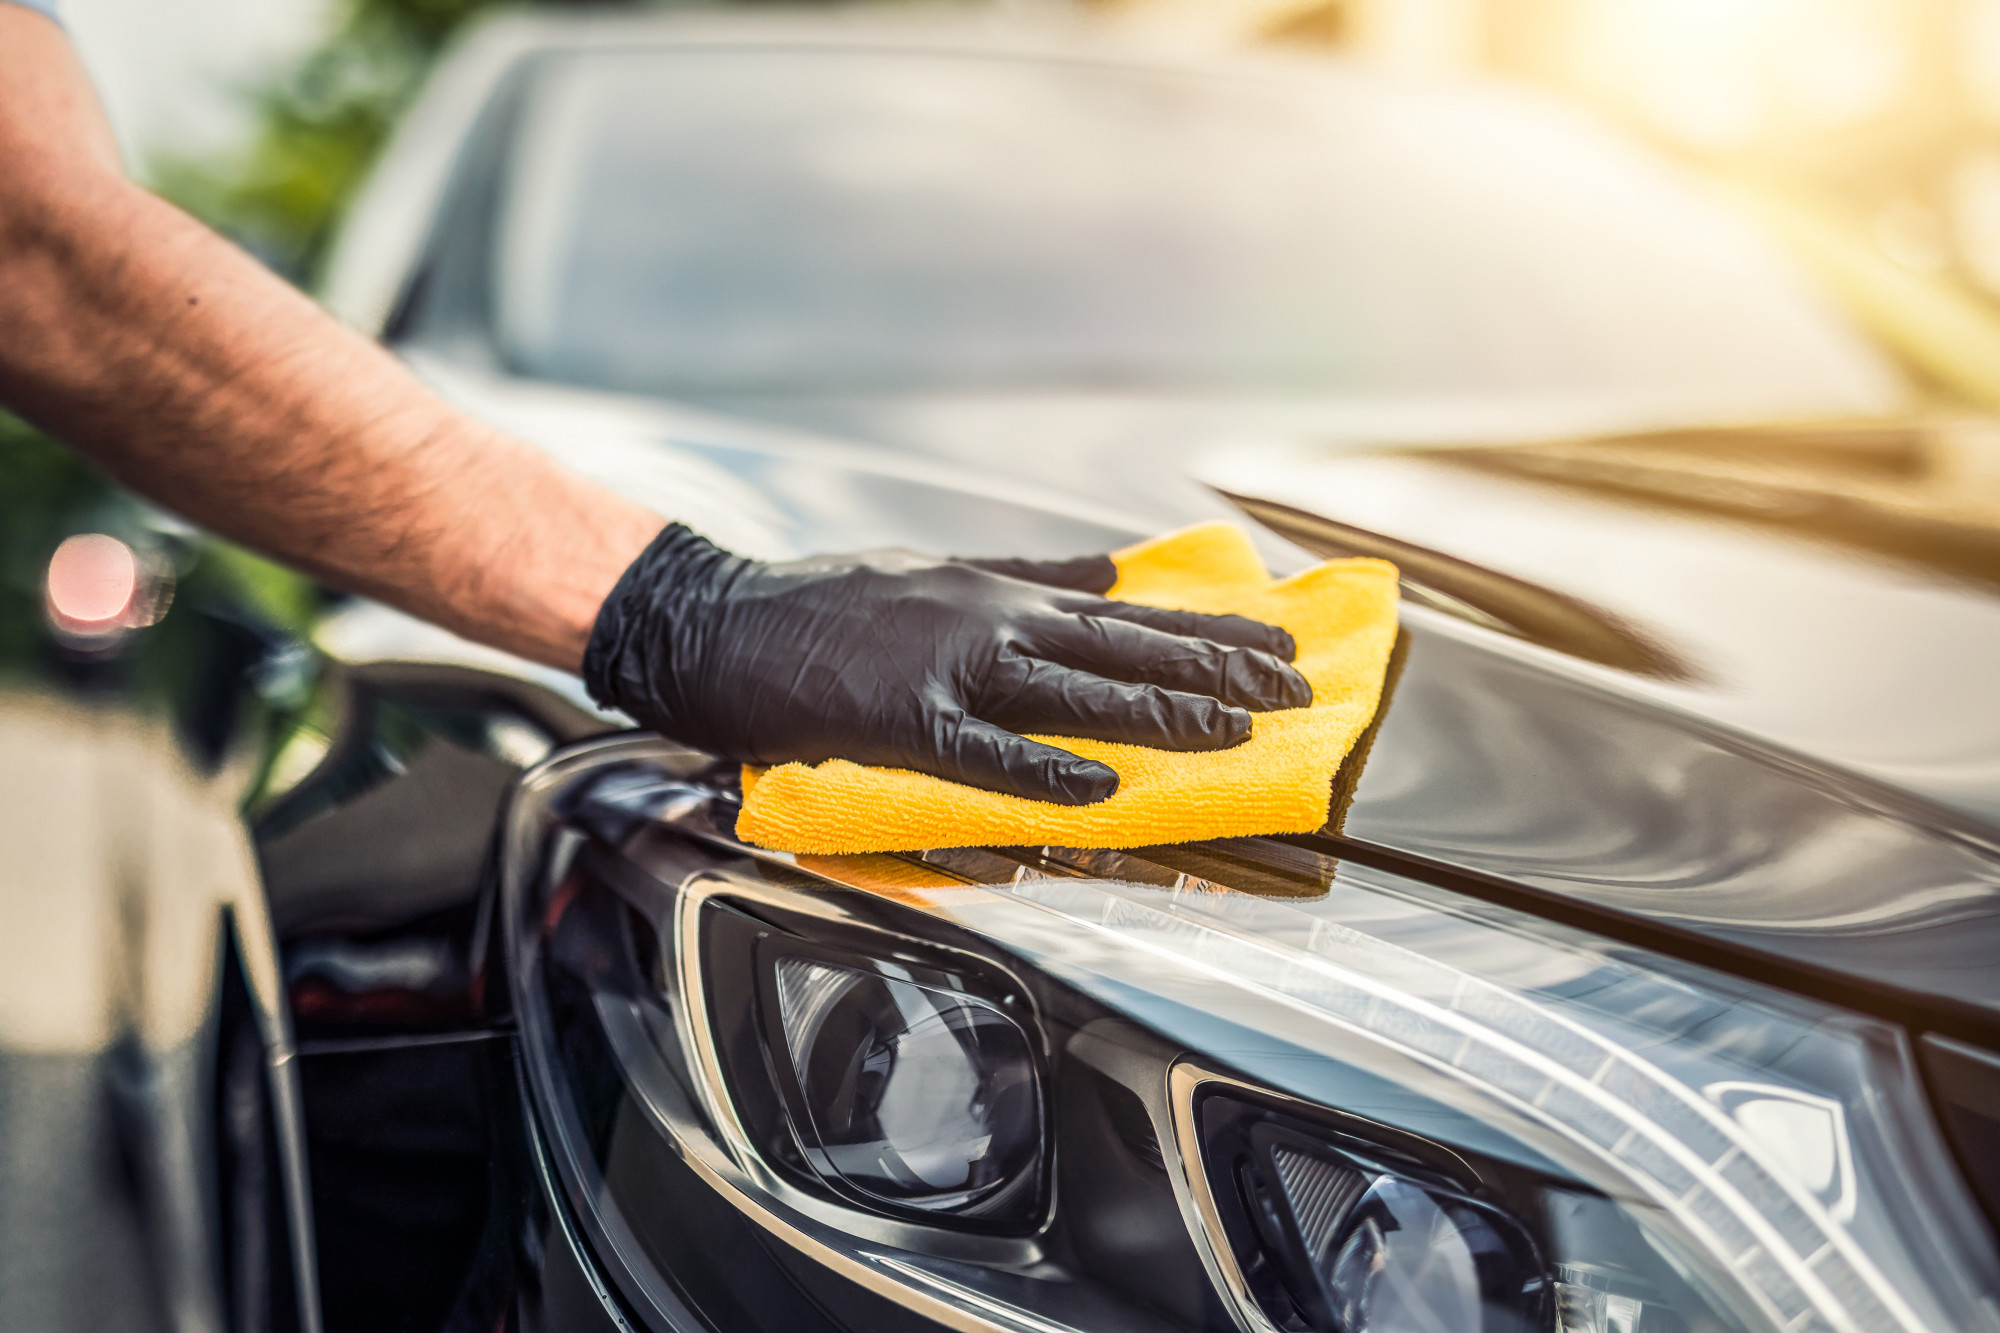 The Benefits of a Ceramic Coating For Your Vehicle